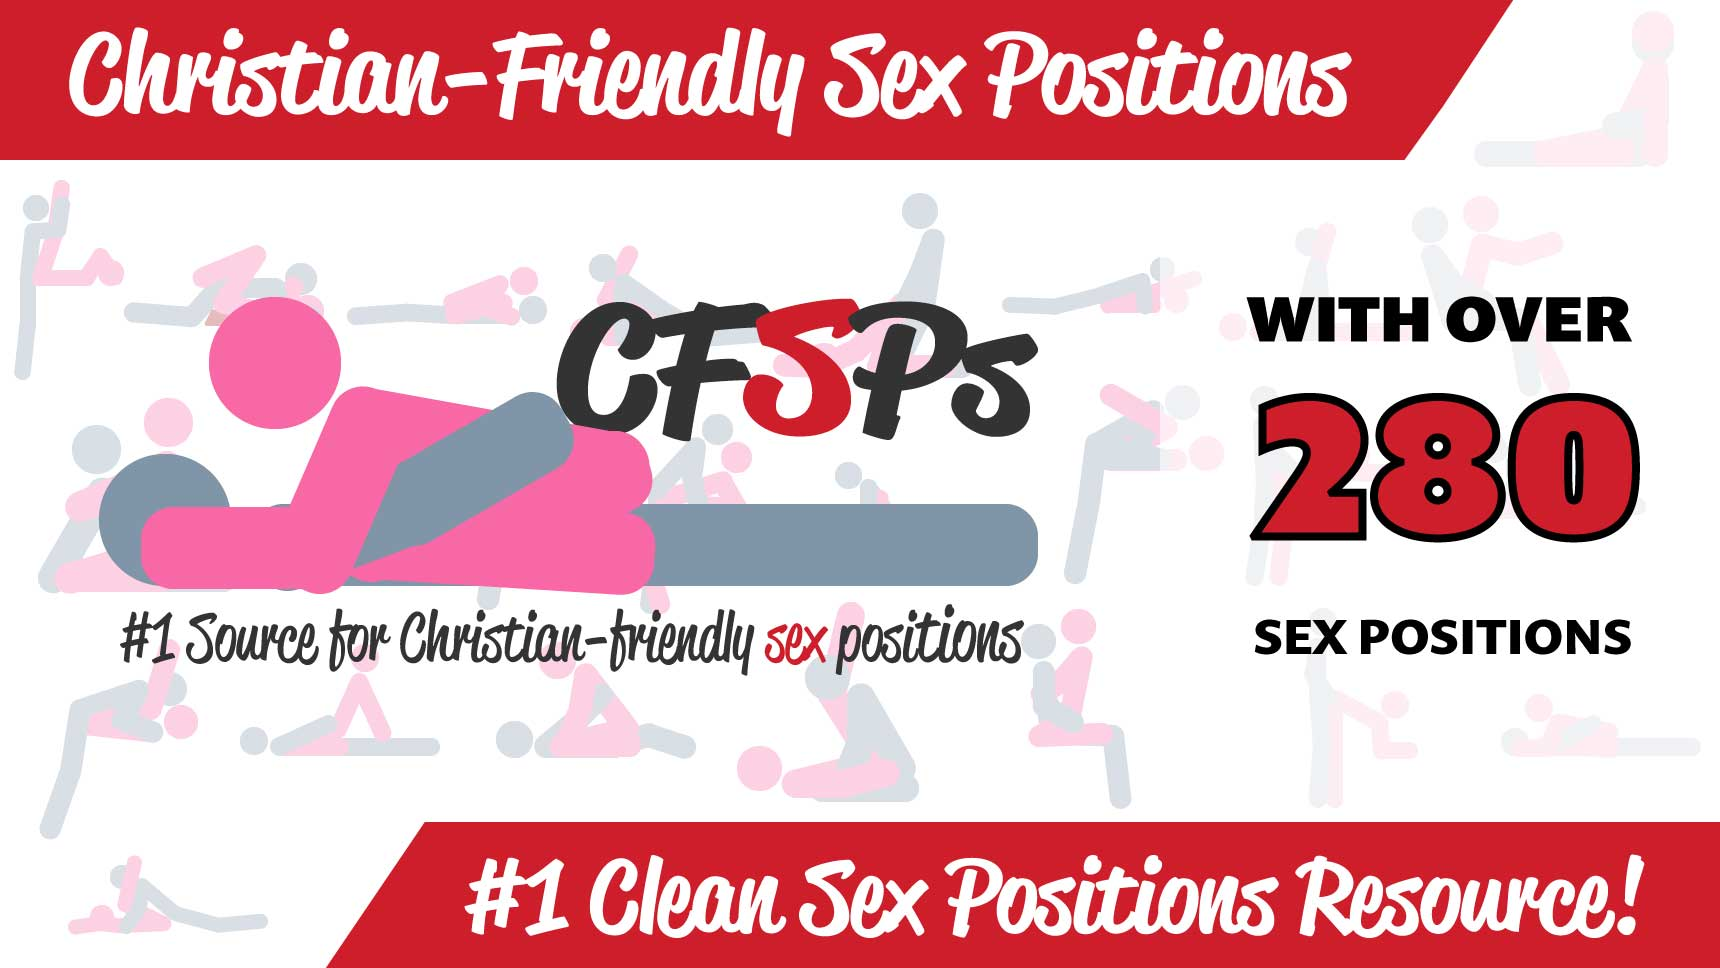 Christian-Friendly Sex Positions